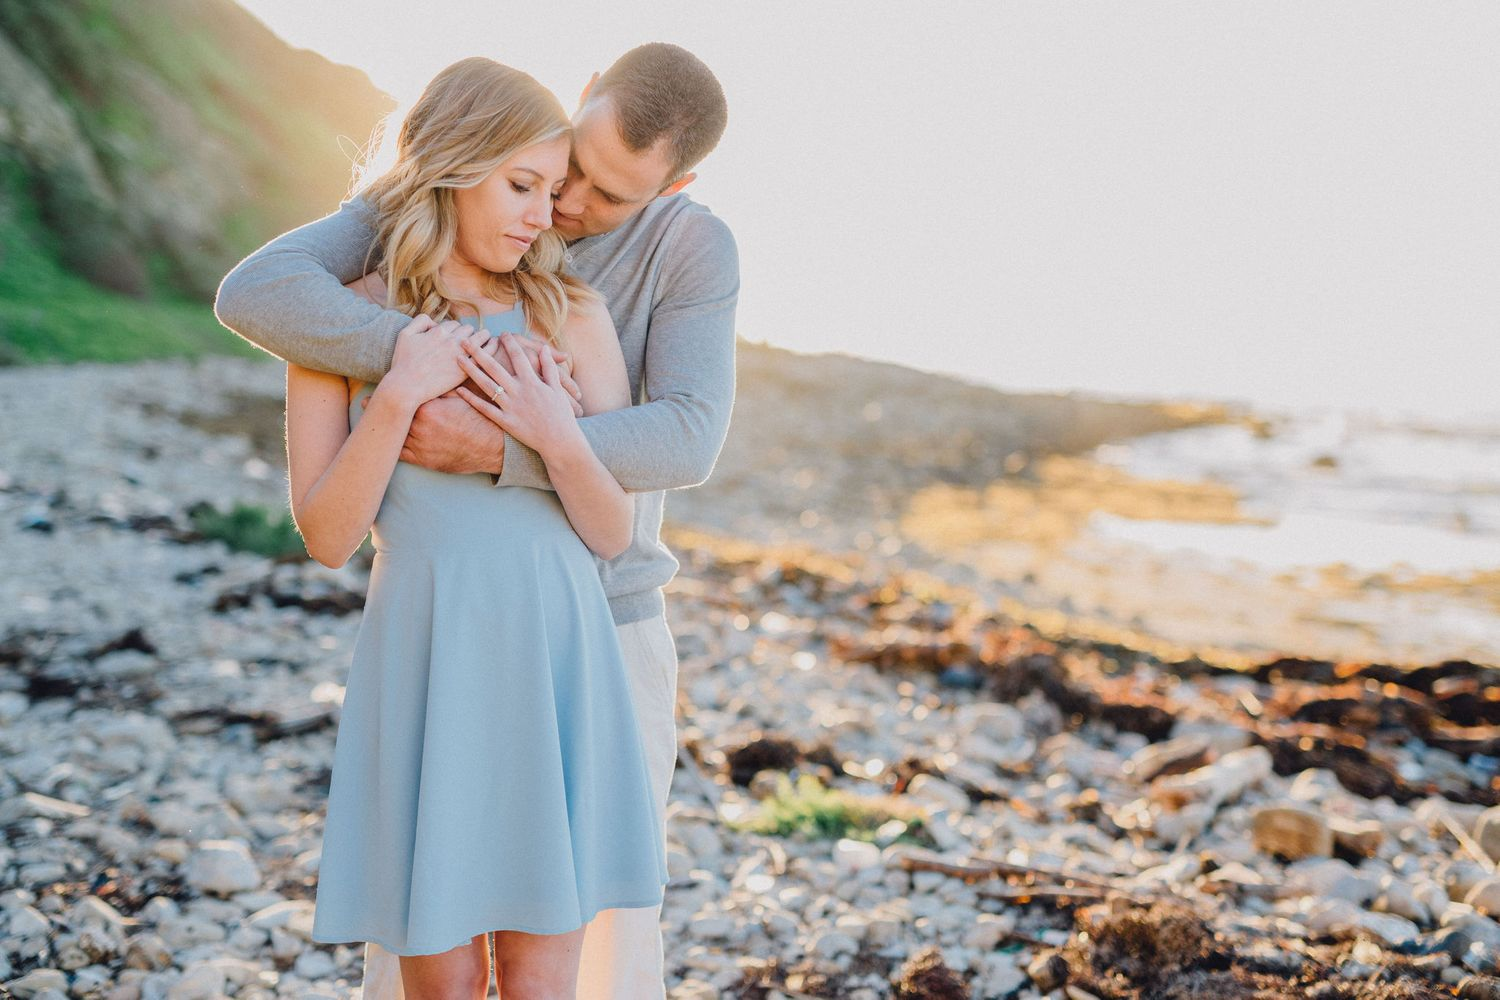 hug on beach engagement photo